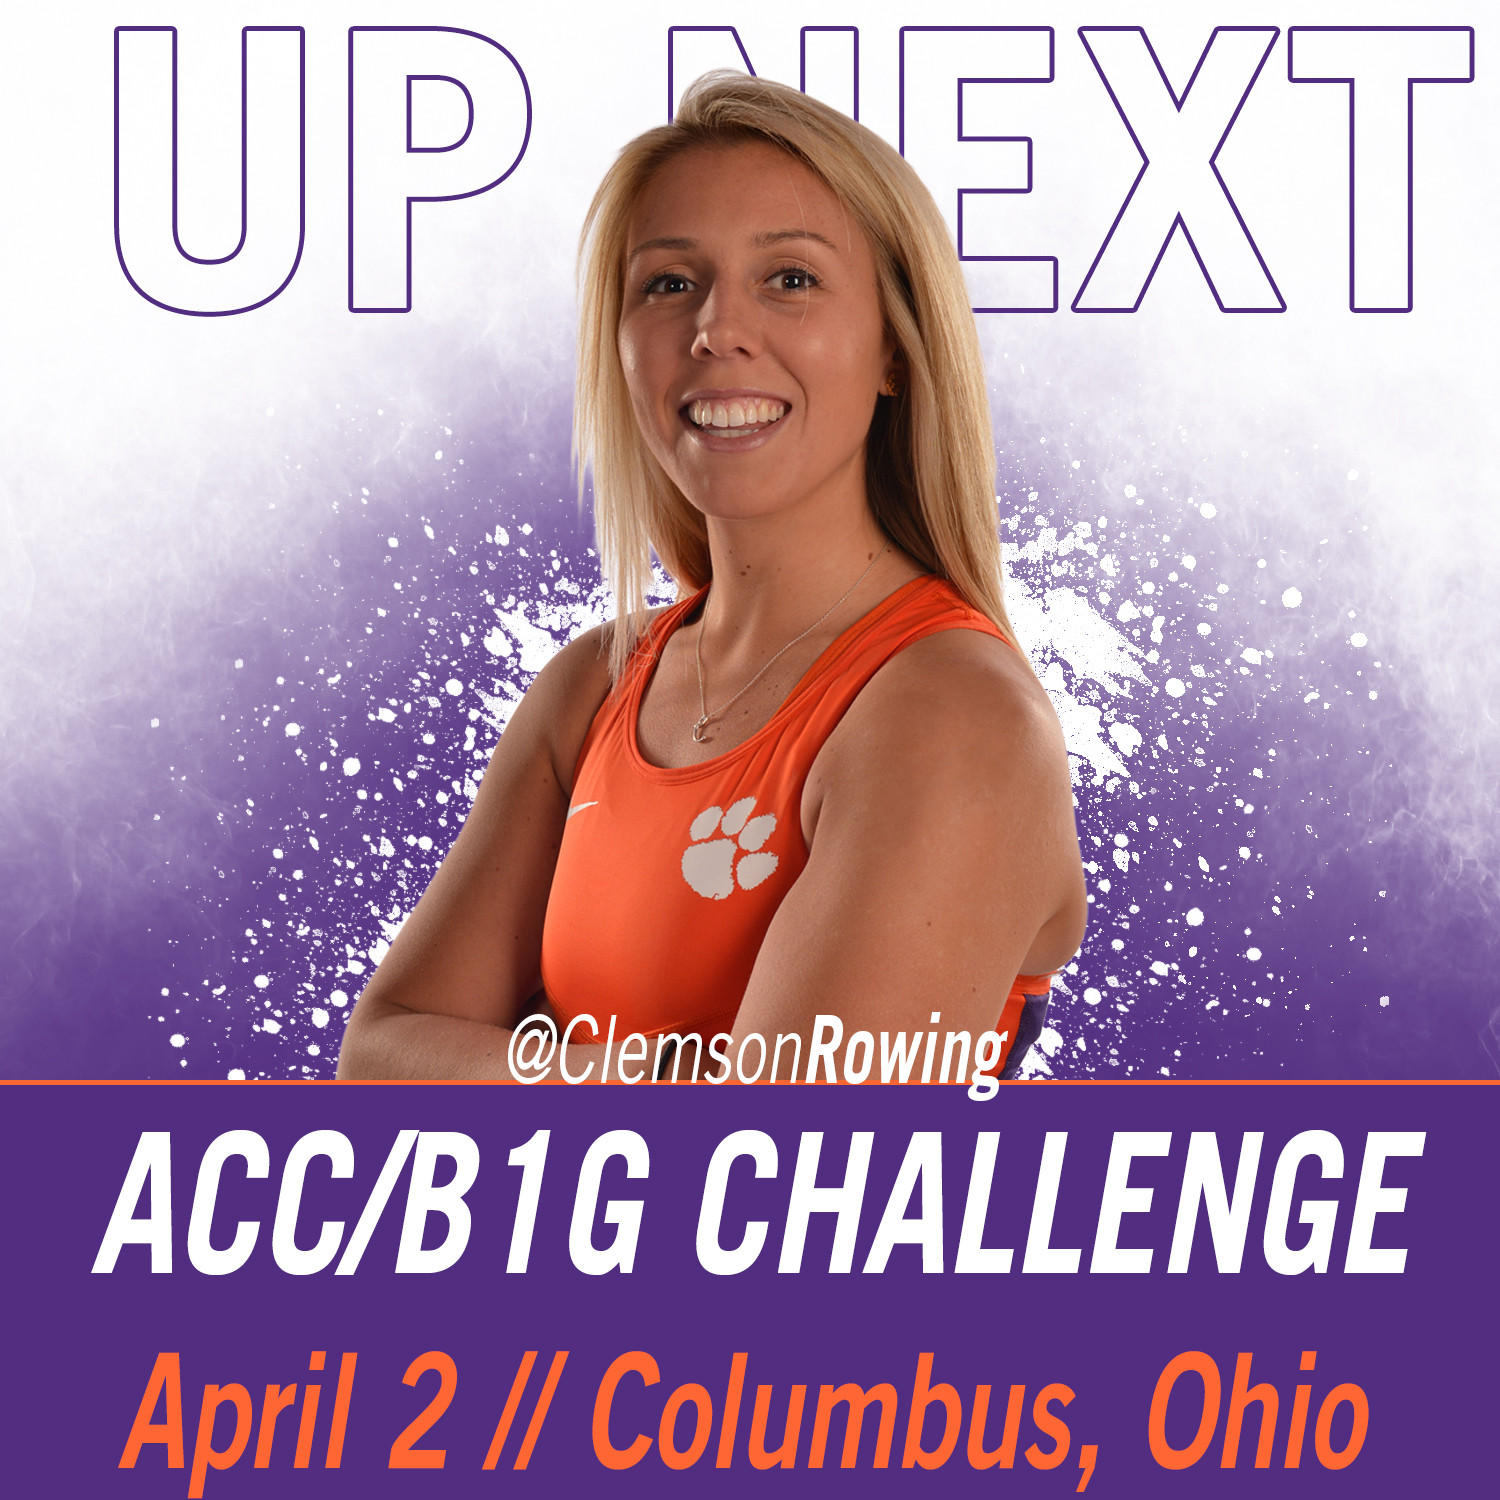 Tigers Face Tough Test at ACC/B1G Challenge